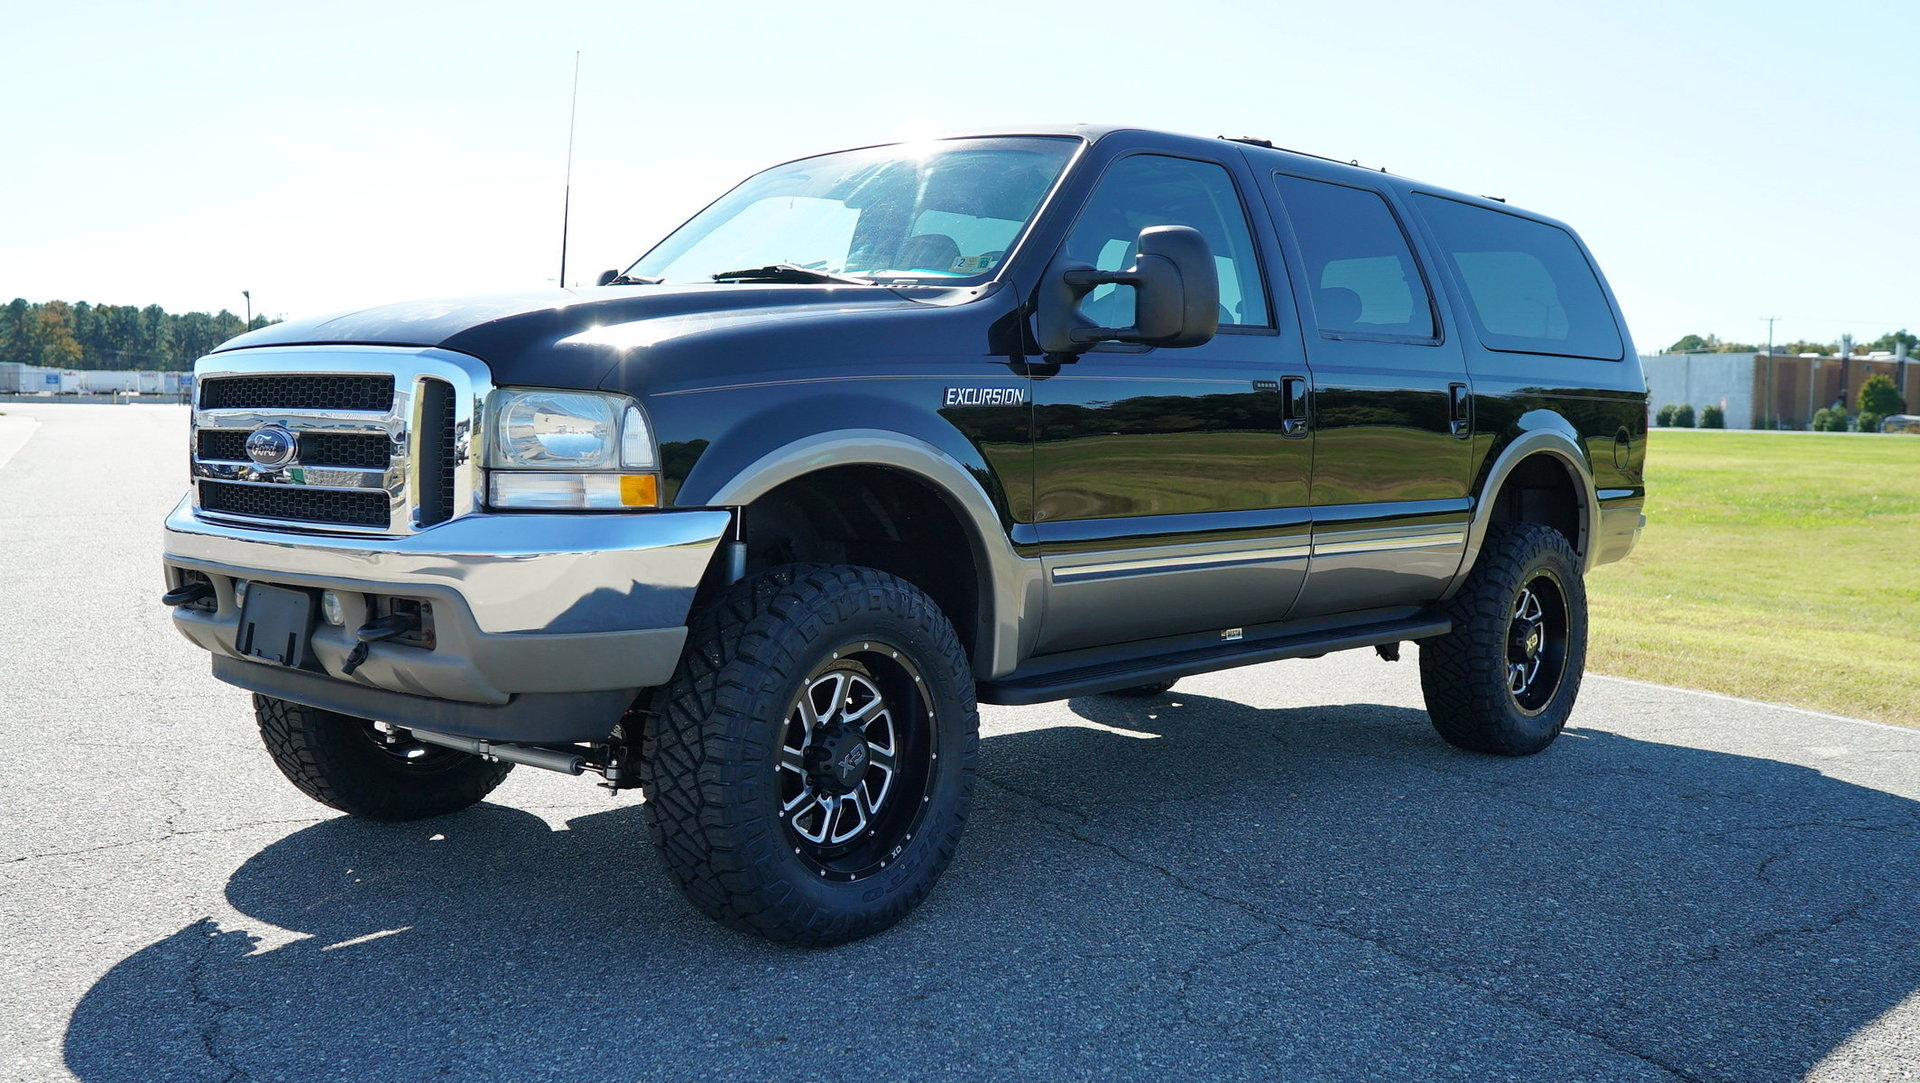 78643 2002 ford excursion 137